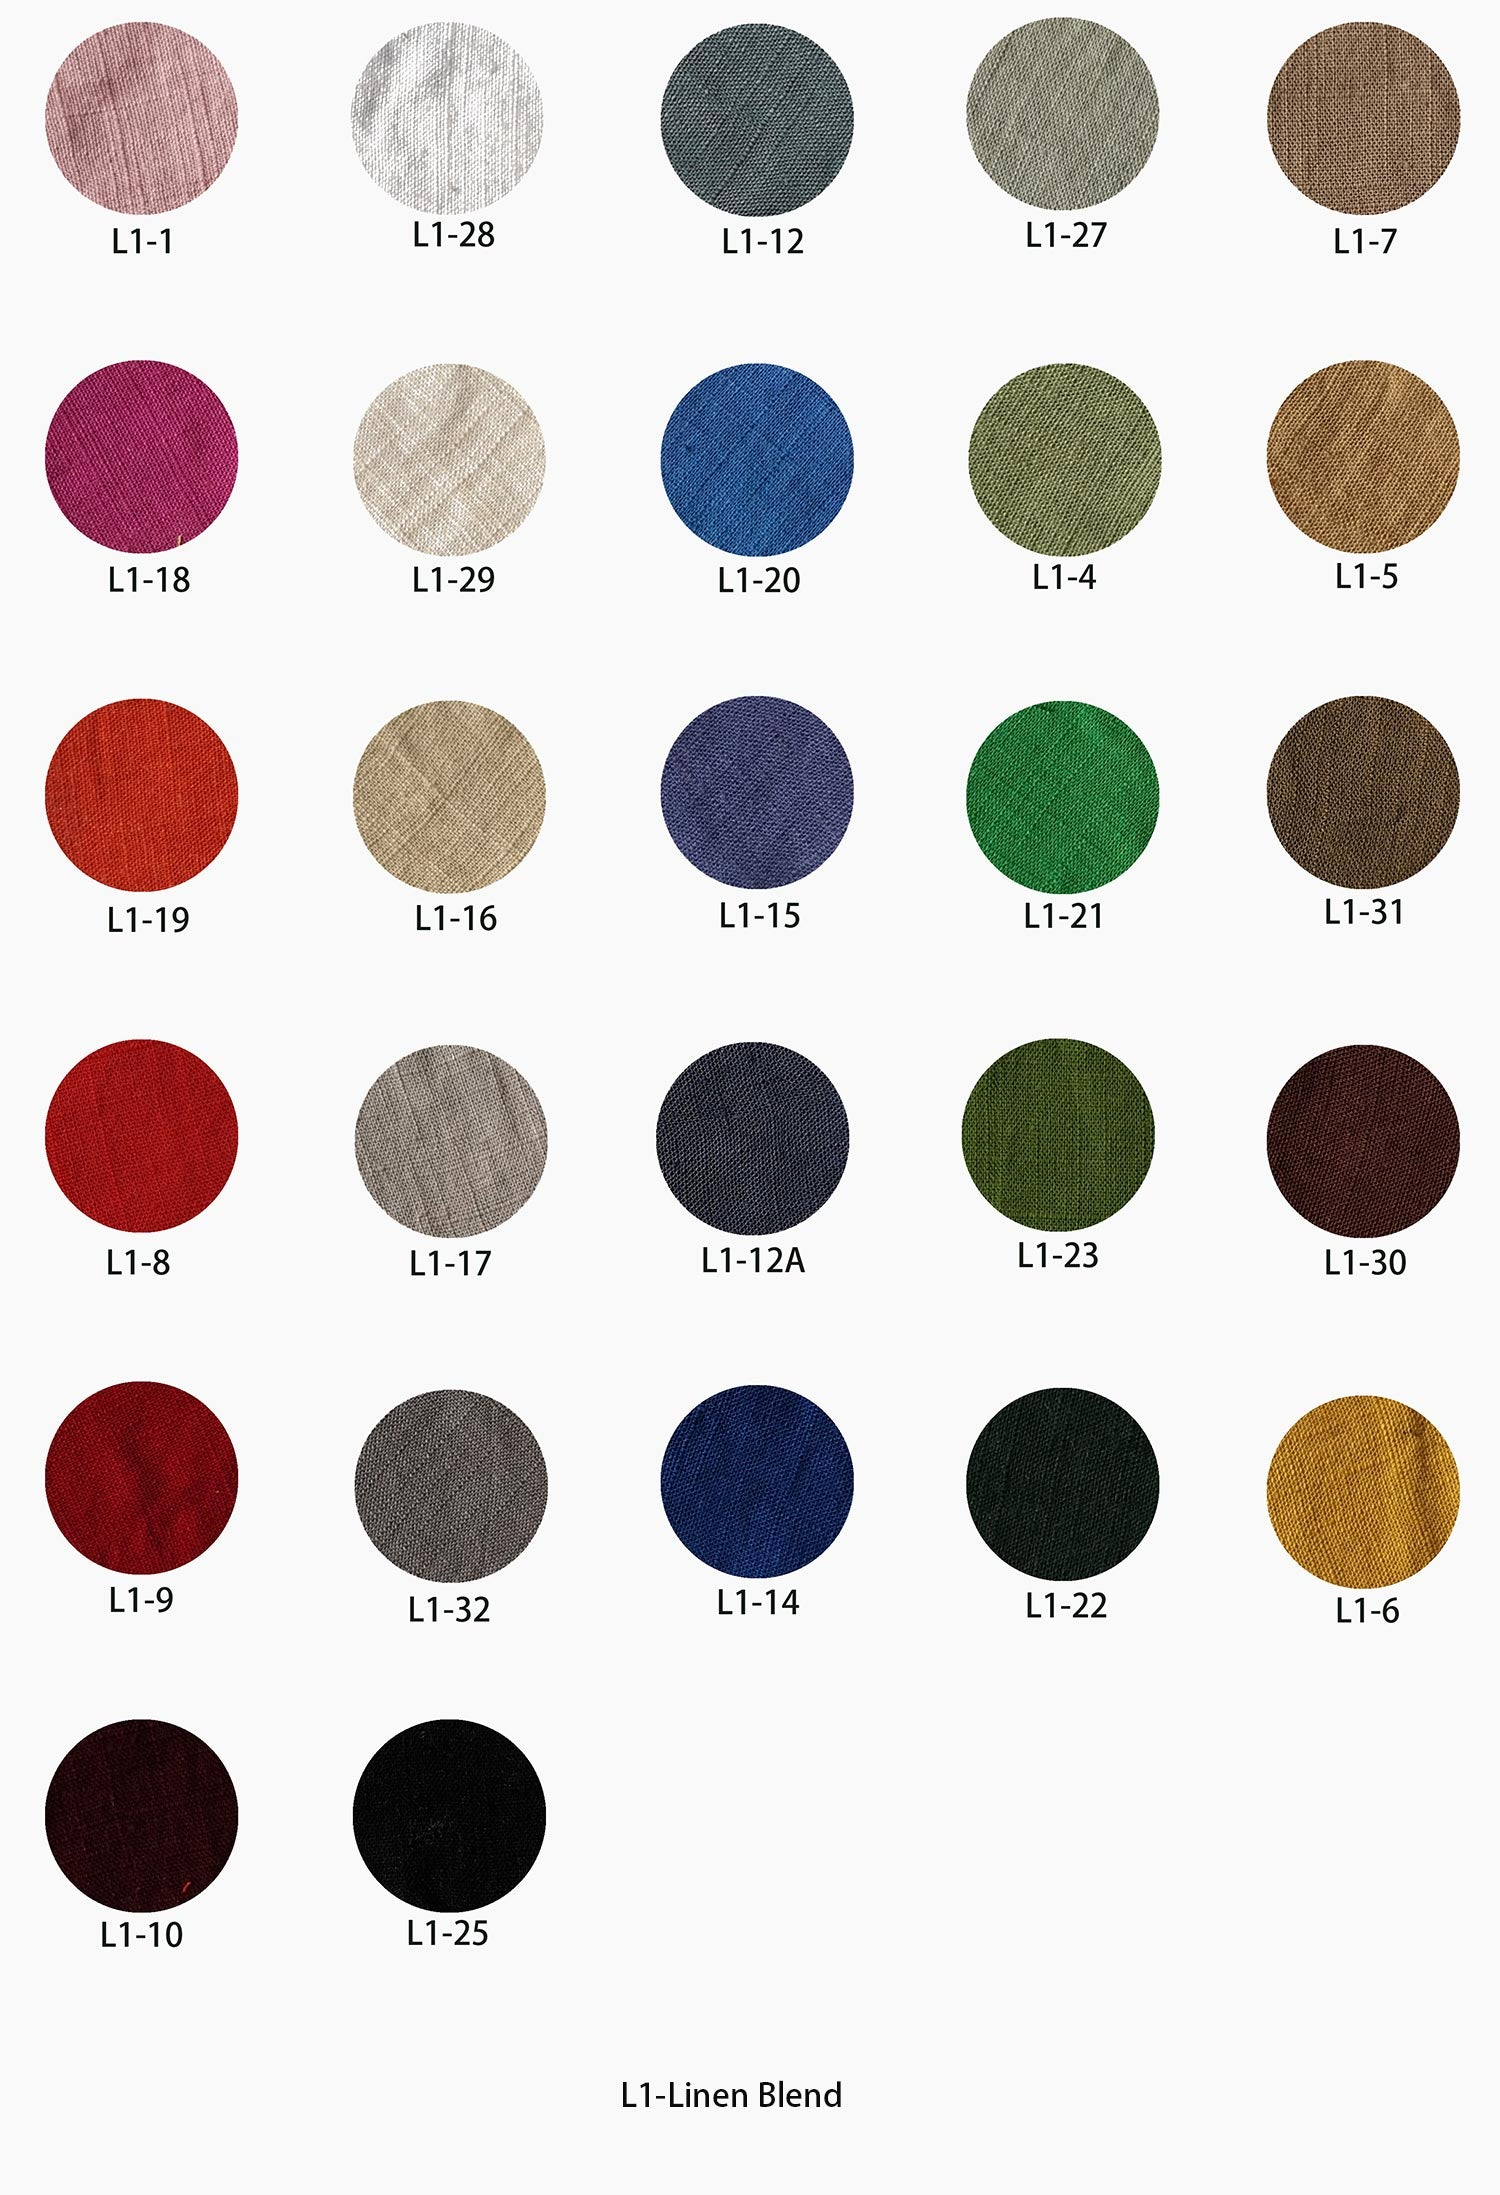 Ylistyle's Linen blend farbic swatch